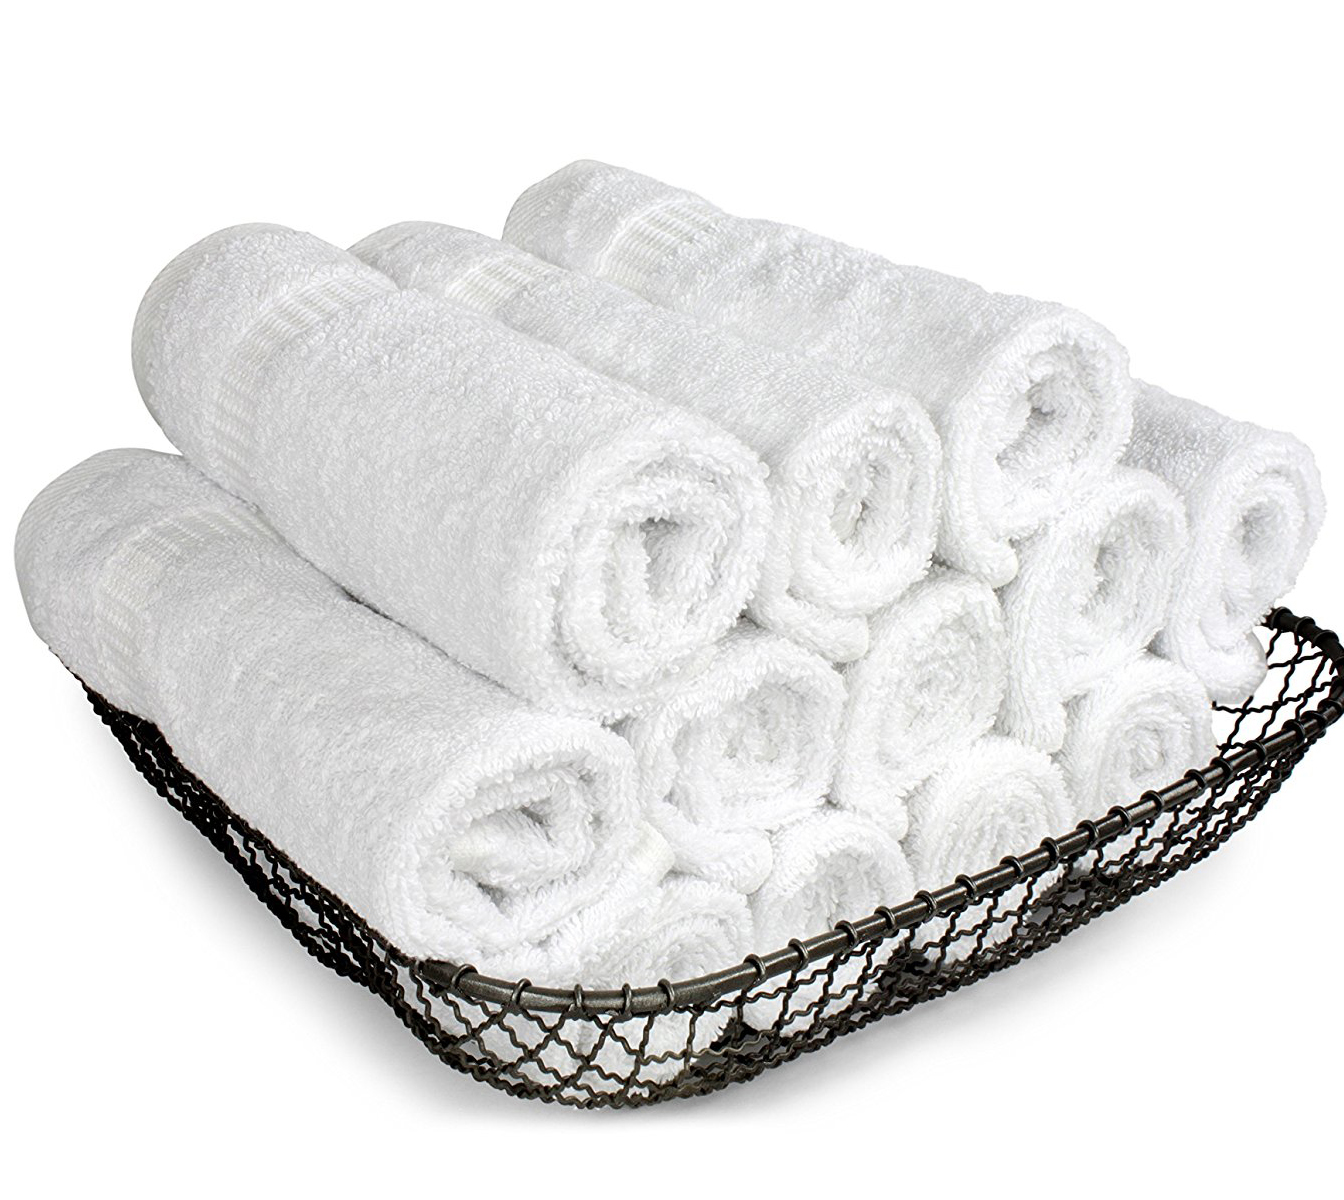 100% Cotton Luxury Hotel Plain Face Cloth white <strong>Towels</strong>